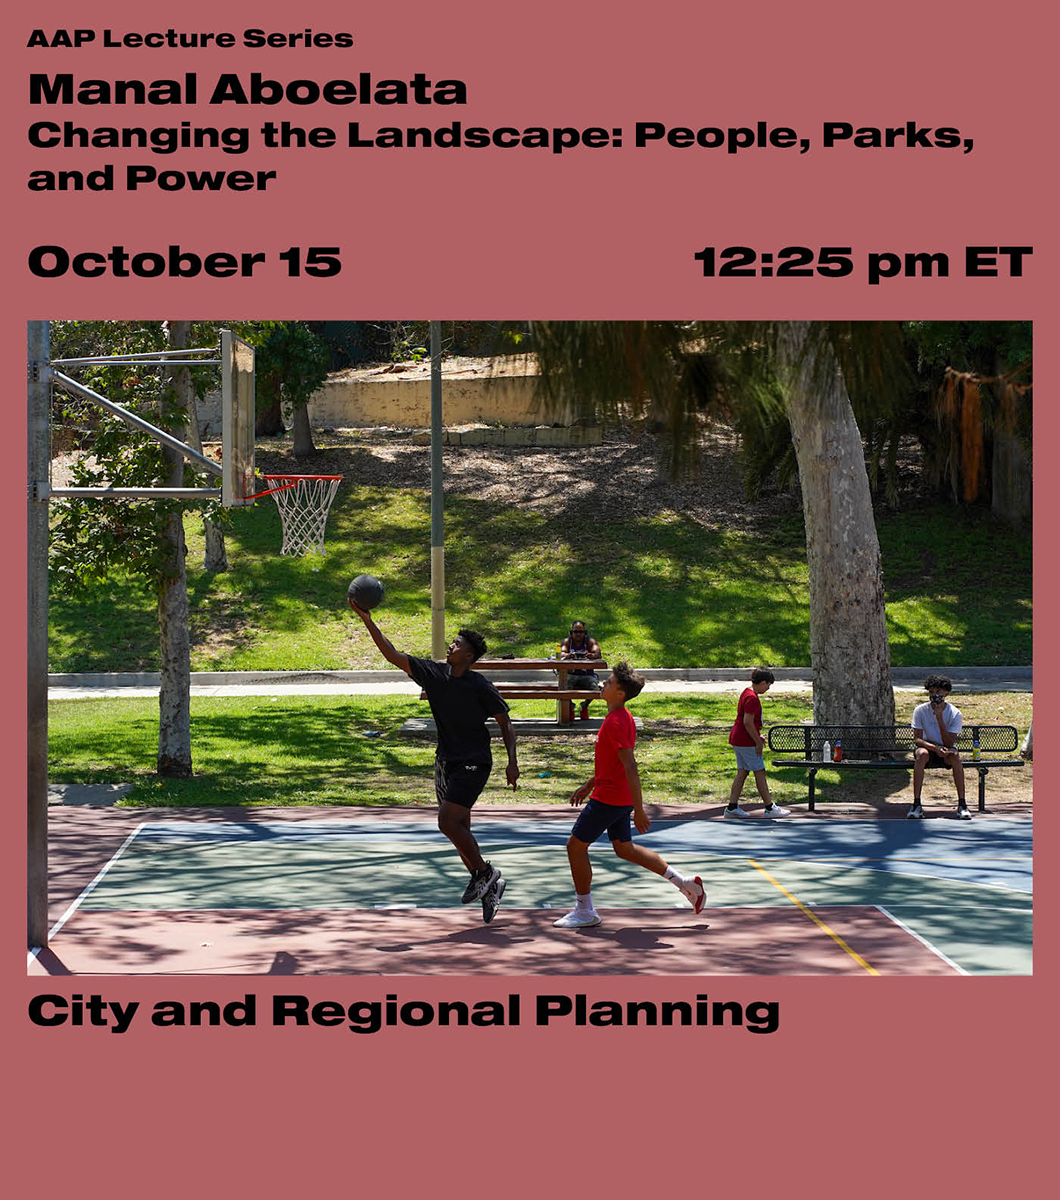 Black text on a pink background with people playing basketball at the park.